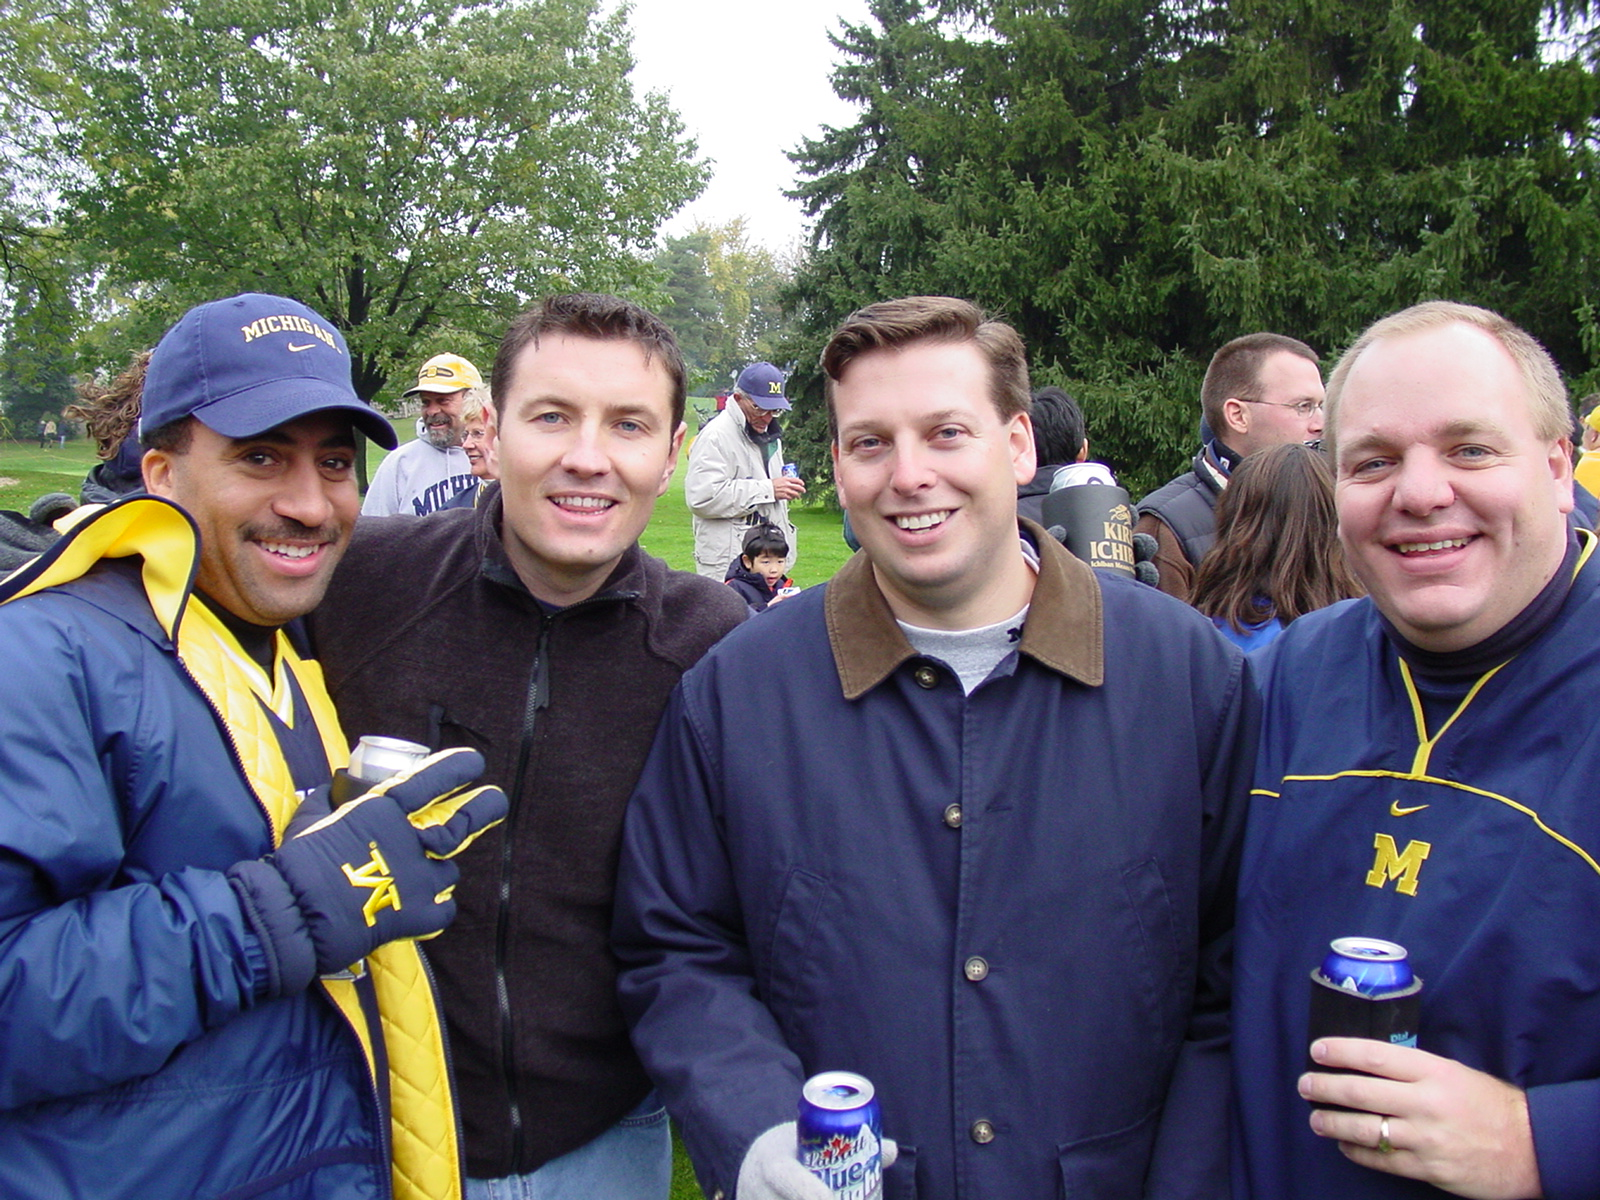 October 26, 2002 - The old roommates reunite before a 34-9 pasting by the Hawkeyes.  This would be the last time pumpkins or hay were at a tailgate.